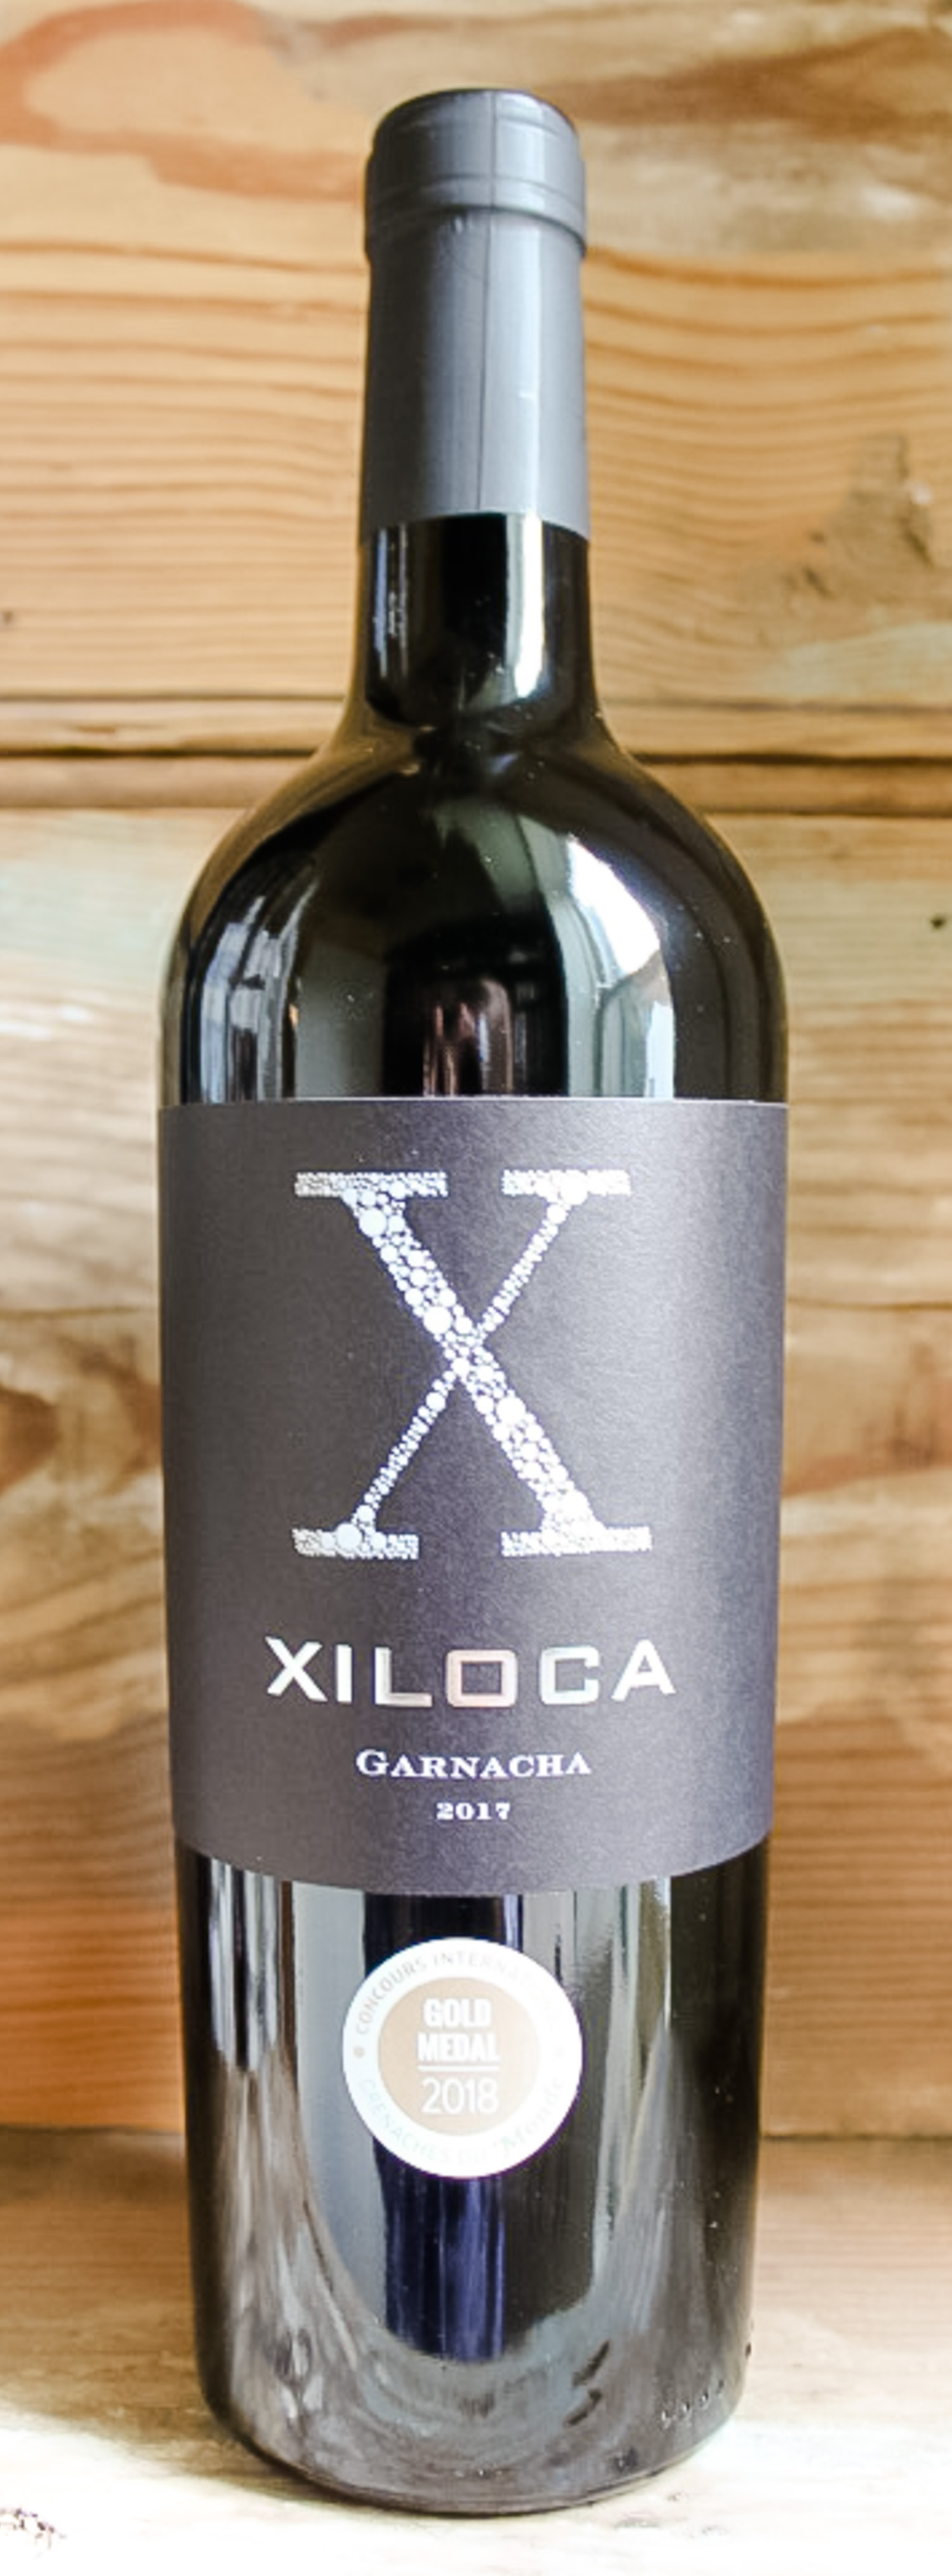 Xiloca Garnacha 2017 - Origin: SpainRetail: $14.95 | Sale: $13.45Intense blackberry color and aroma jump from the glass. The freshness of the integrated tannins invite you in for a second sip. The intensity continues in a mouth-filling palate and a lingering fruit and mineral finish. Calatayud is a region a short distance from Spain's most famous region, Rioja. This garnacha is produced from 40-100 year old organically farmed vines. Its fresh on the palette with black cherry, leafy, and licorice flavors. 100% Garnacha